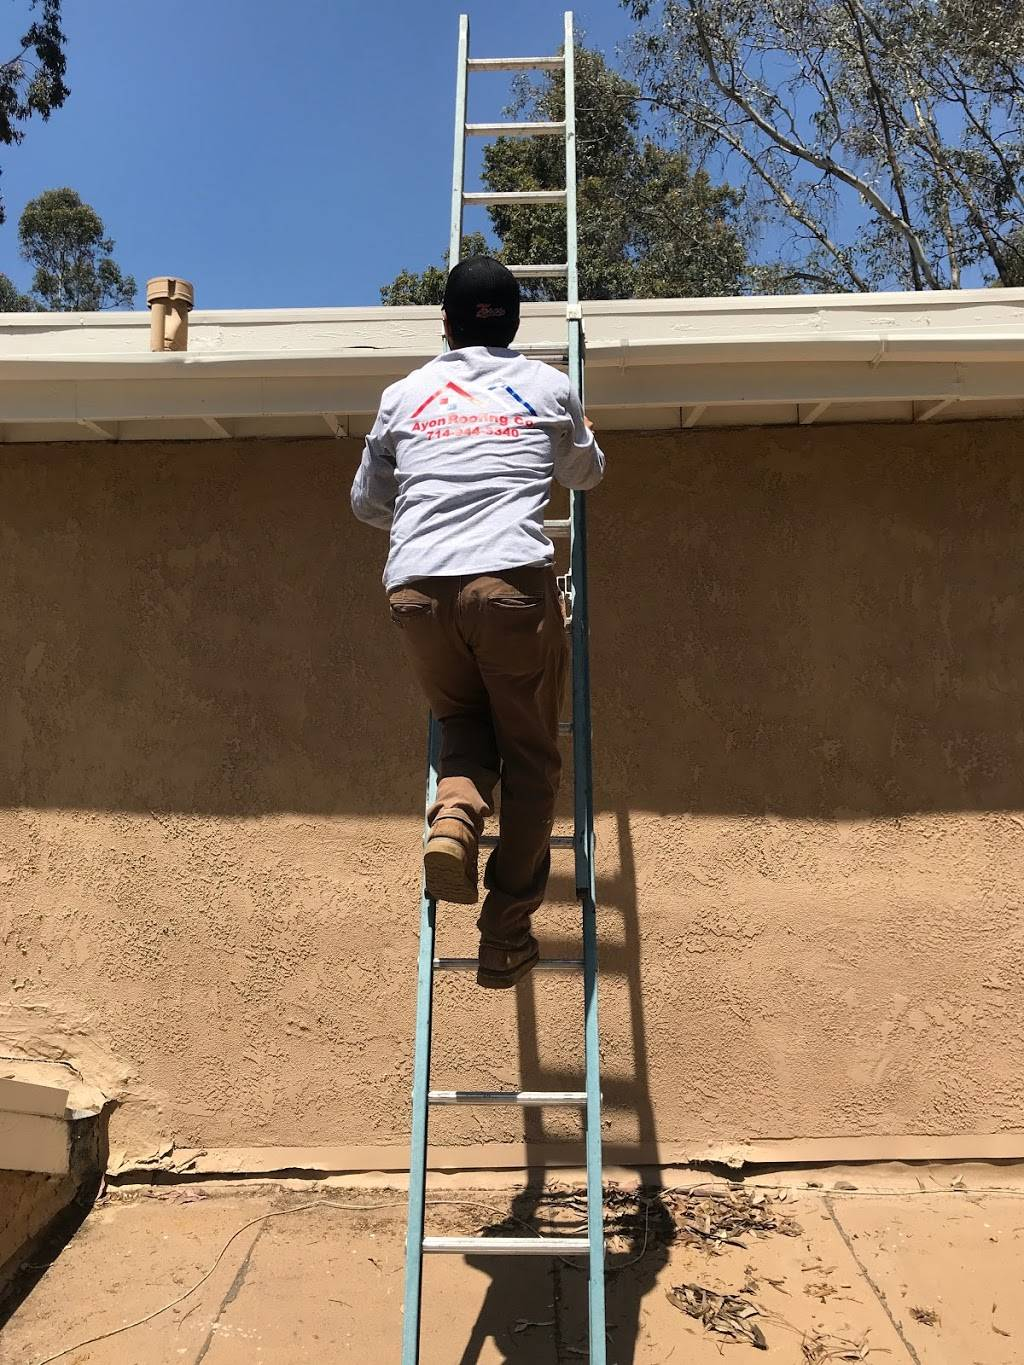 Ayon's Roofing - roofing contractor  | Photo 7 of 8 | Address: 1713 E Sycamore St, Anaheim, CA 92805, USA | Phone: (714) 944-3340